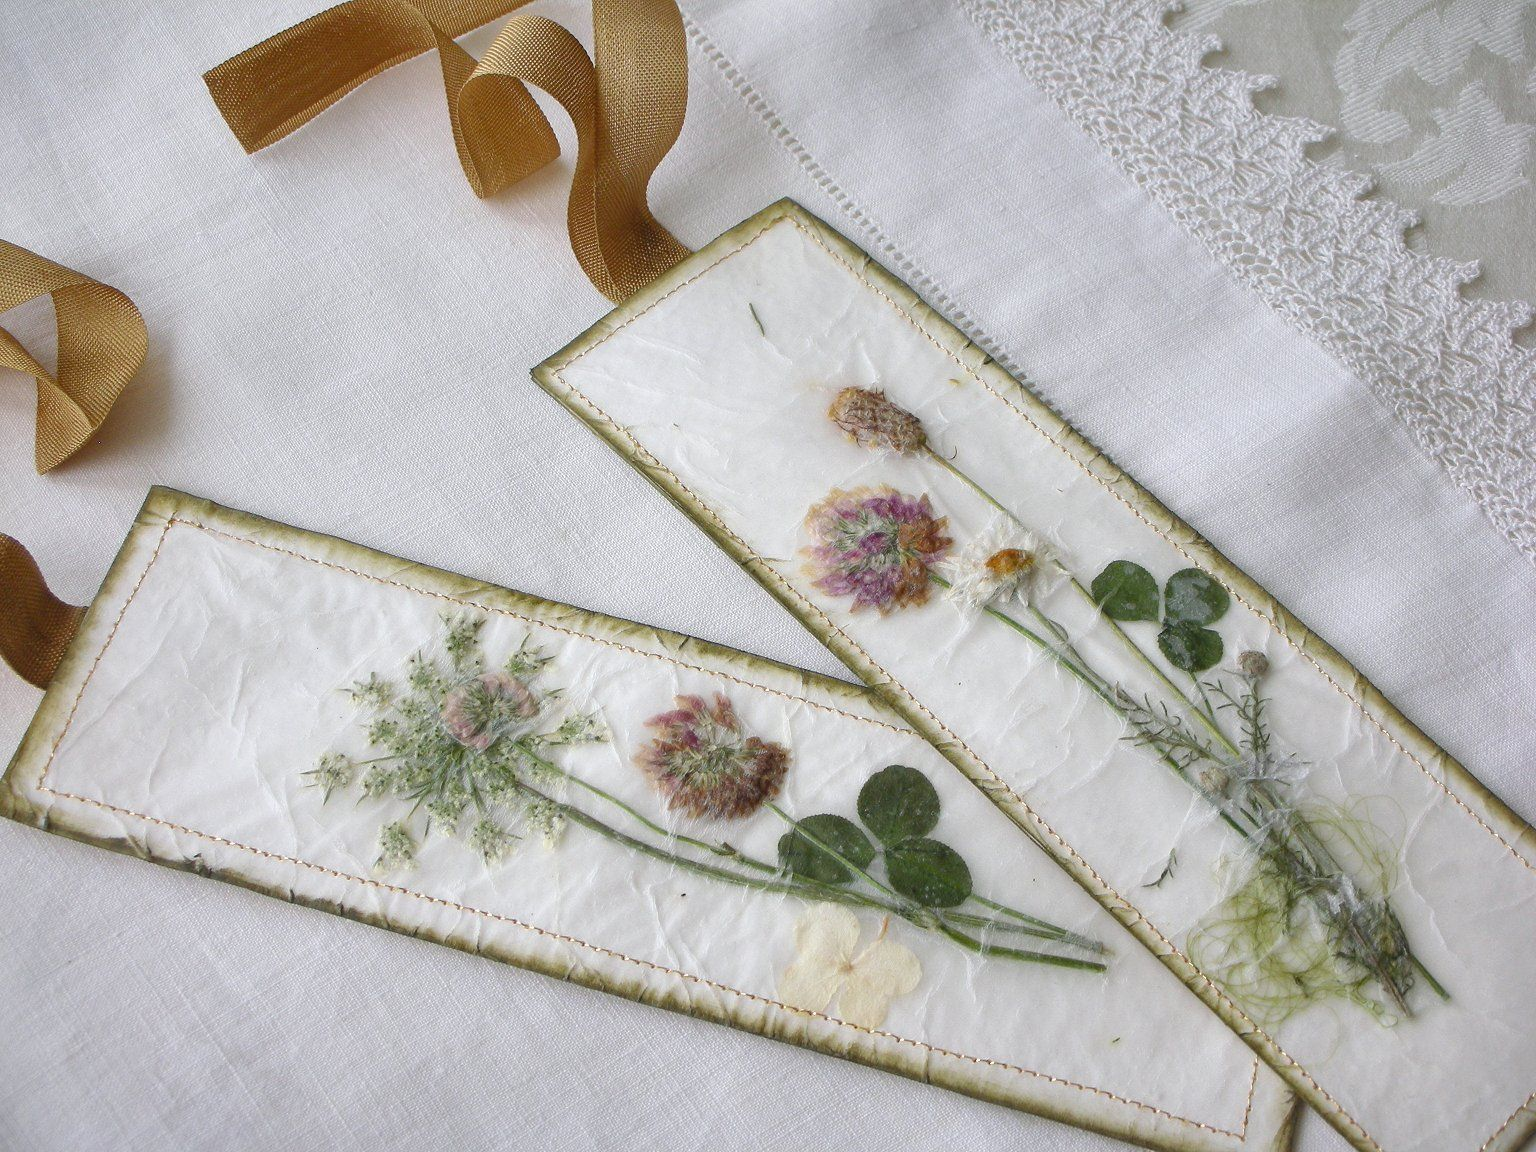 How to scrapbook pressed flowers - Dried Flower Bookmarks Diy Beautiful Uses A Technique I Never Would Have Thought